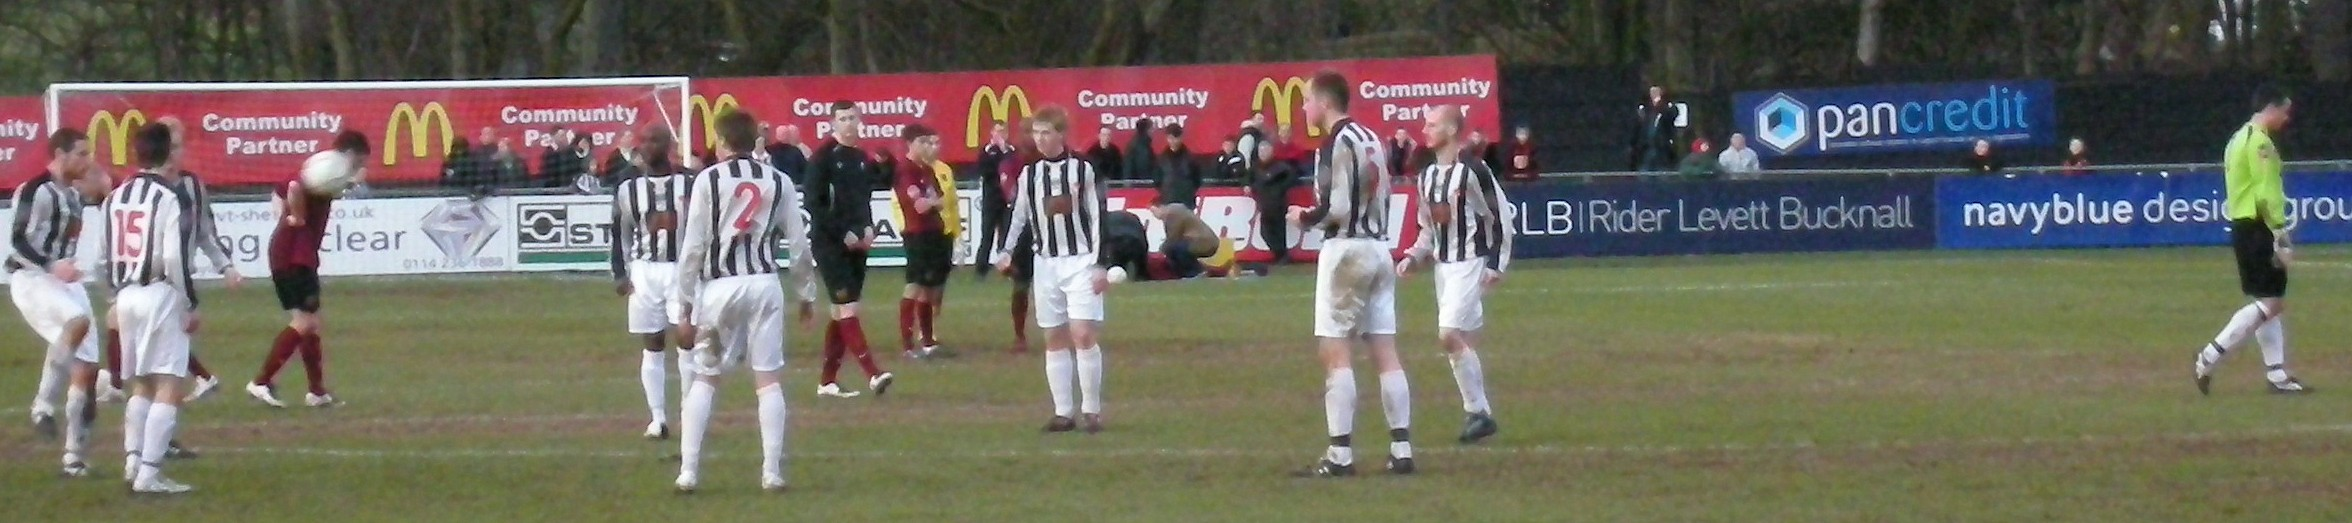 retford230208injury.jpg